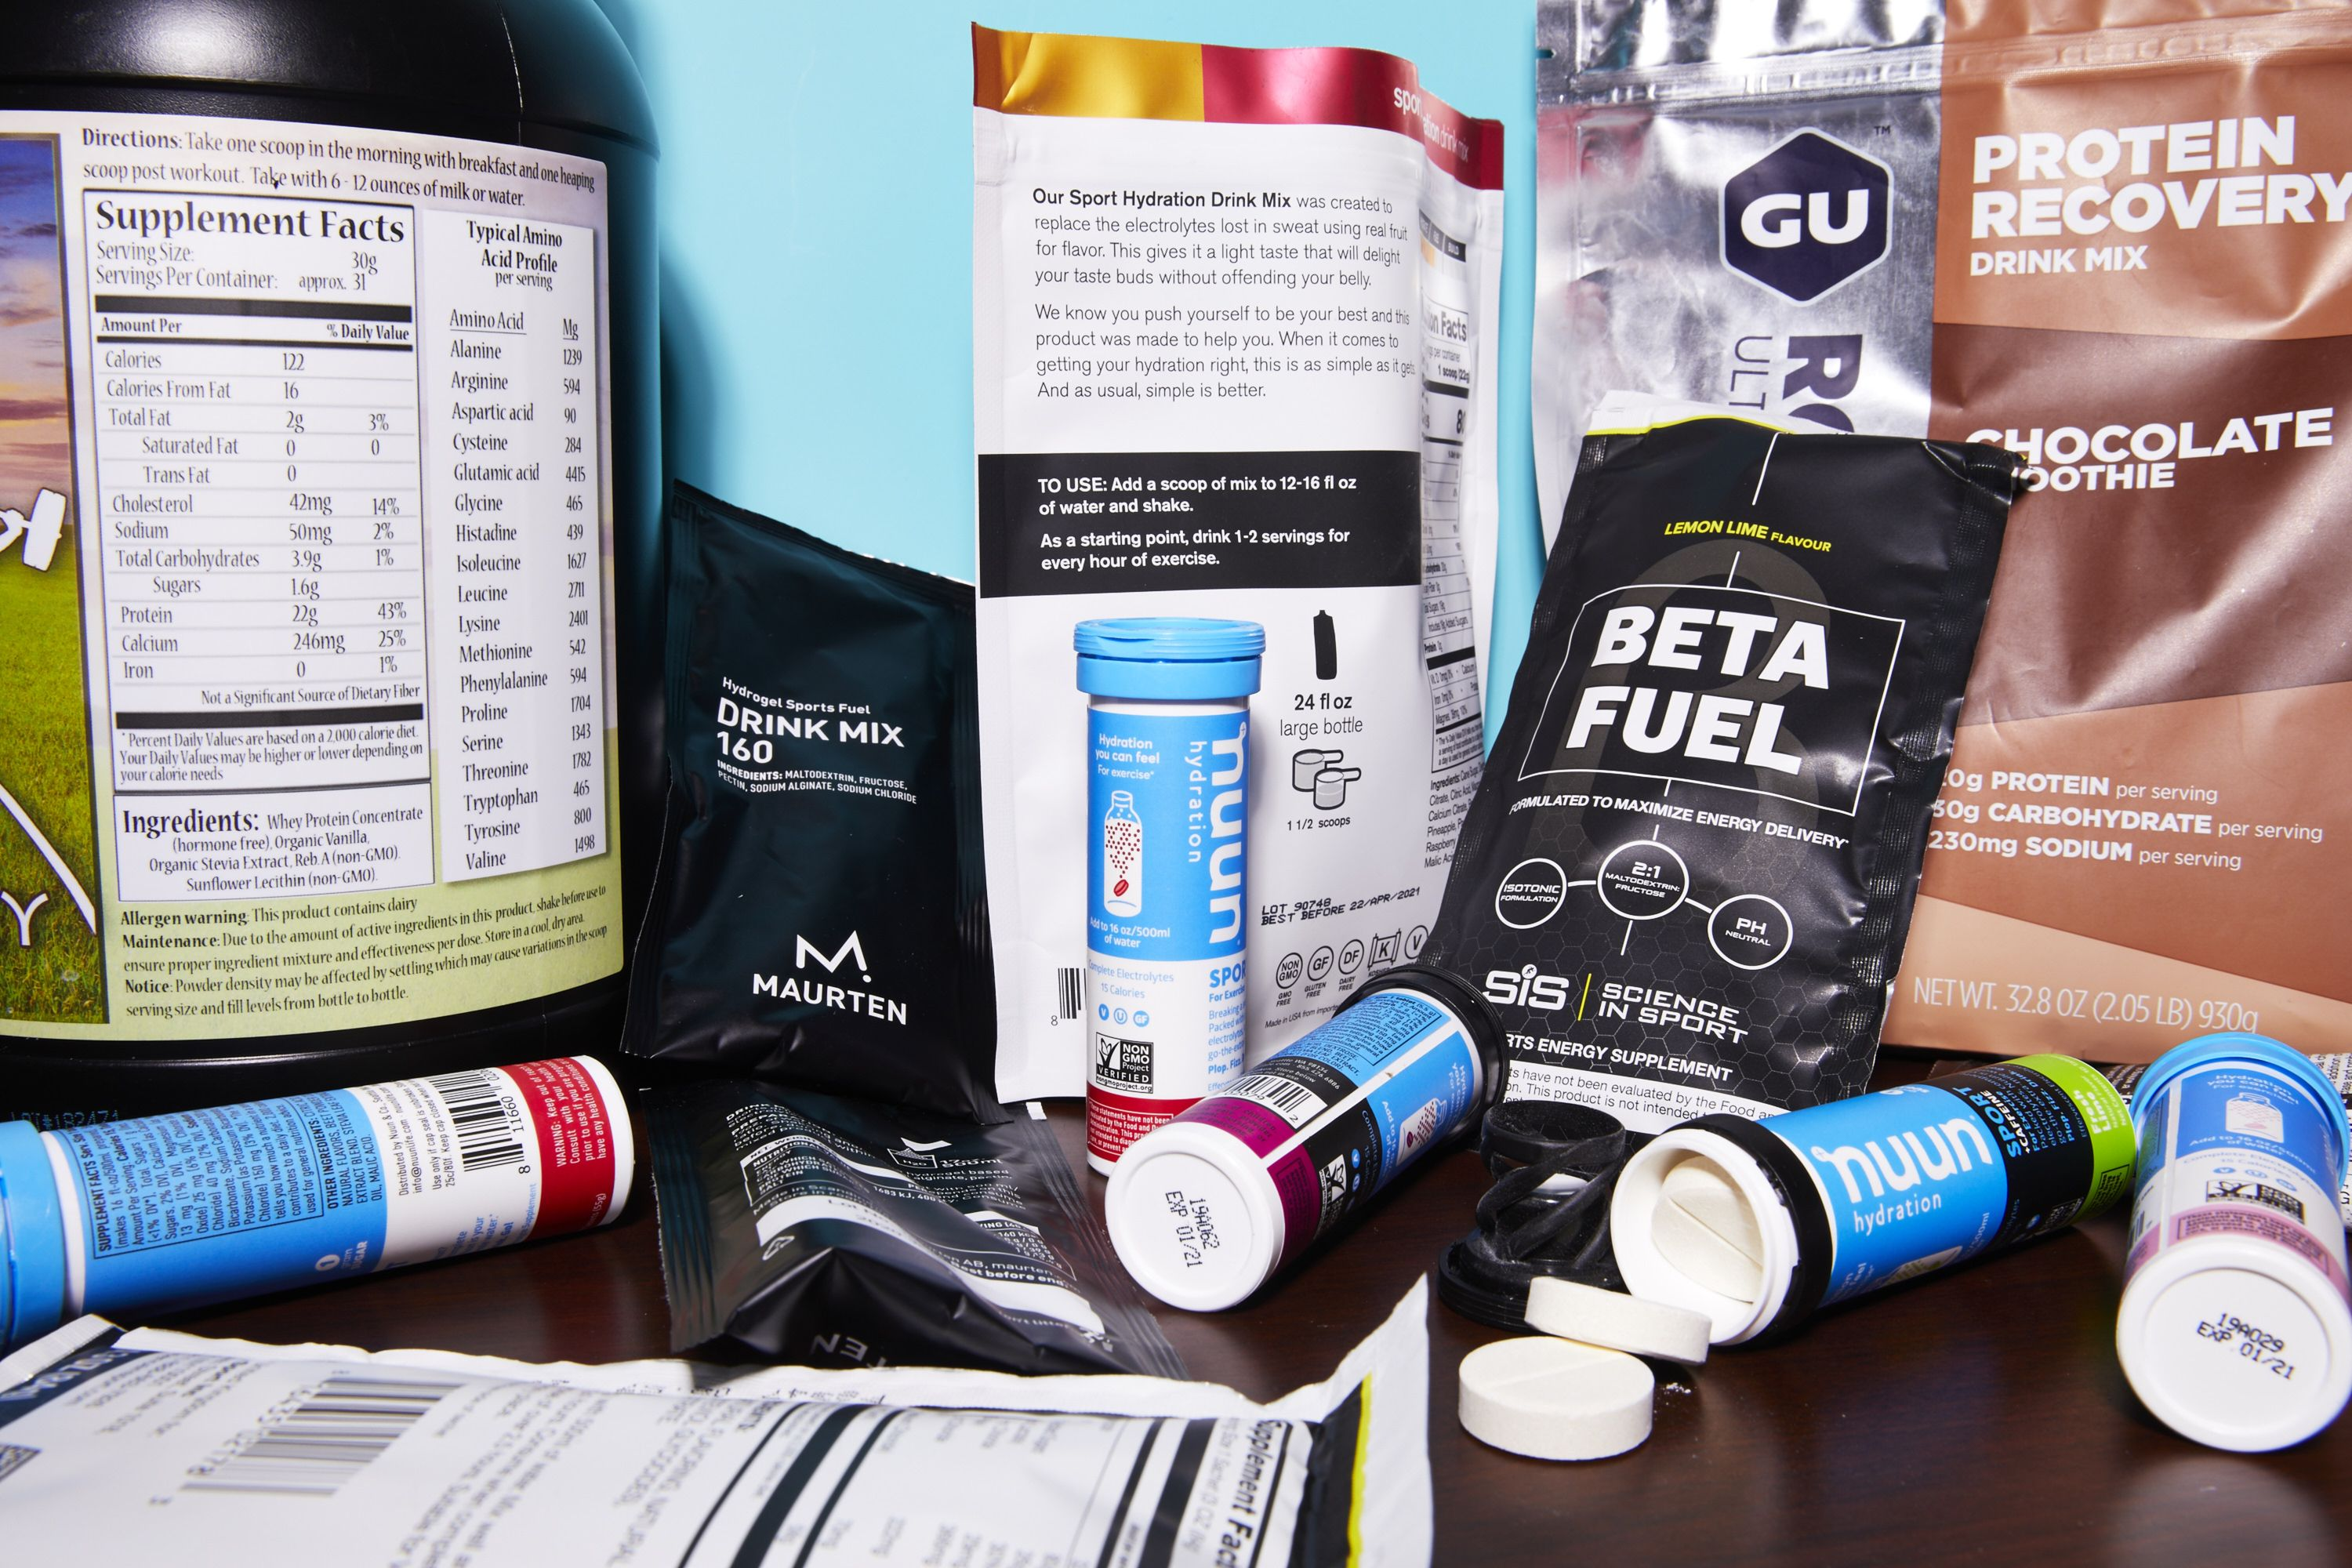 What You Need to Know About the Common Ingredients in Workout Supplements